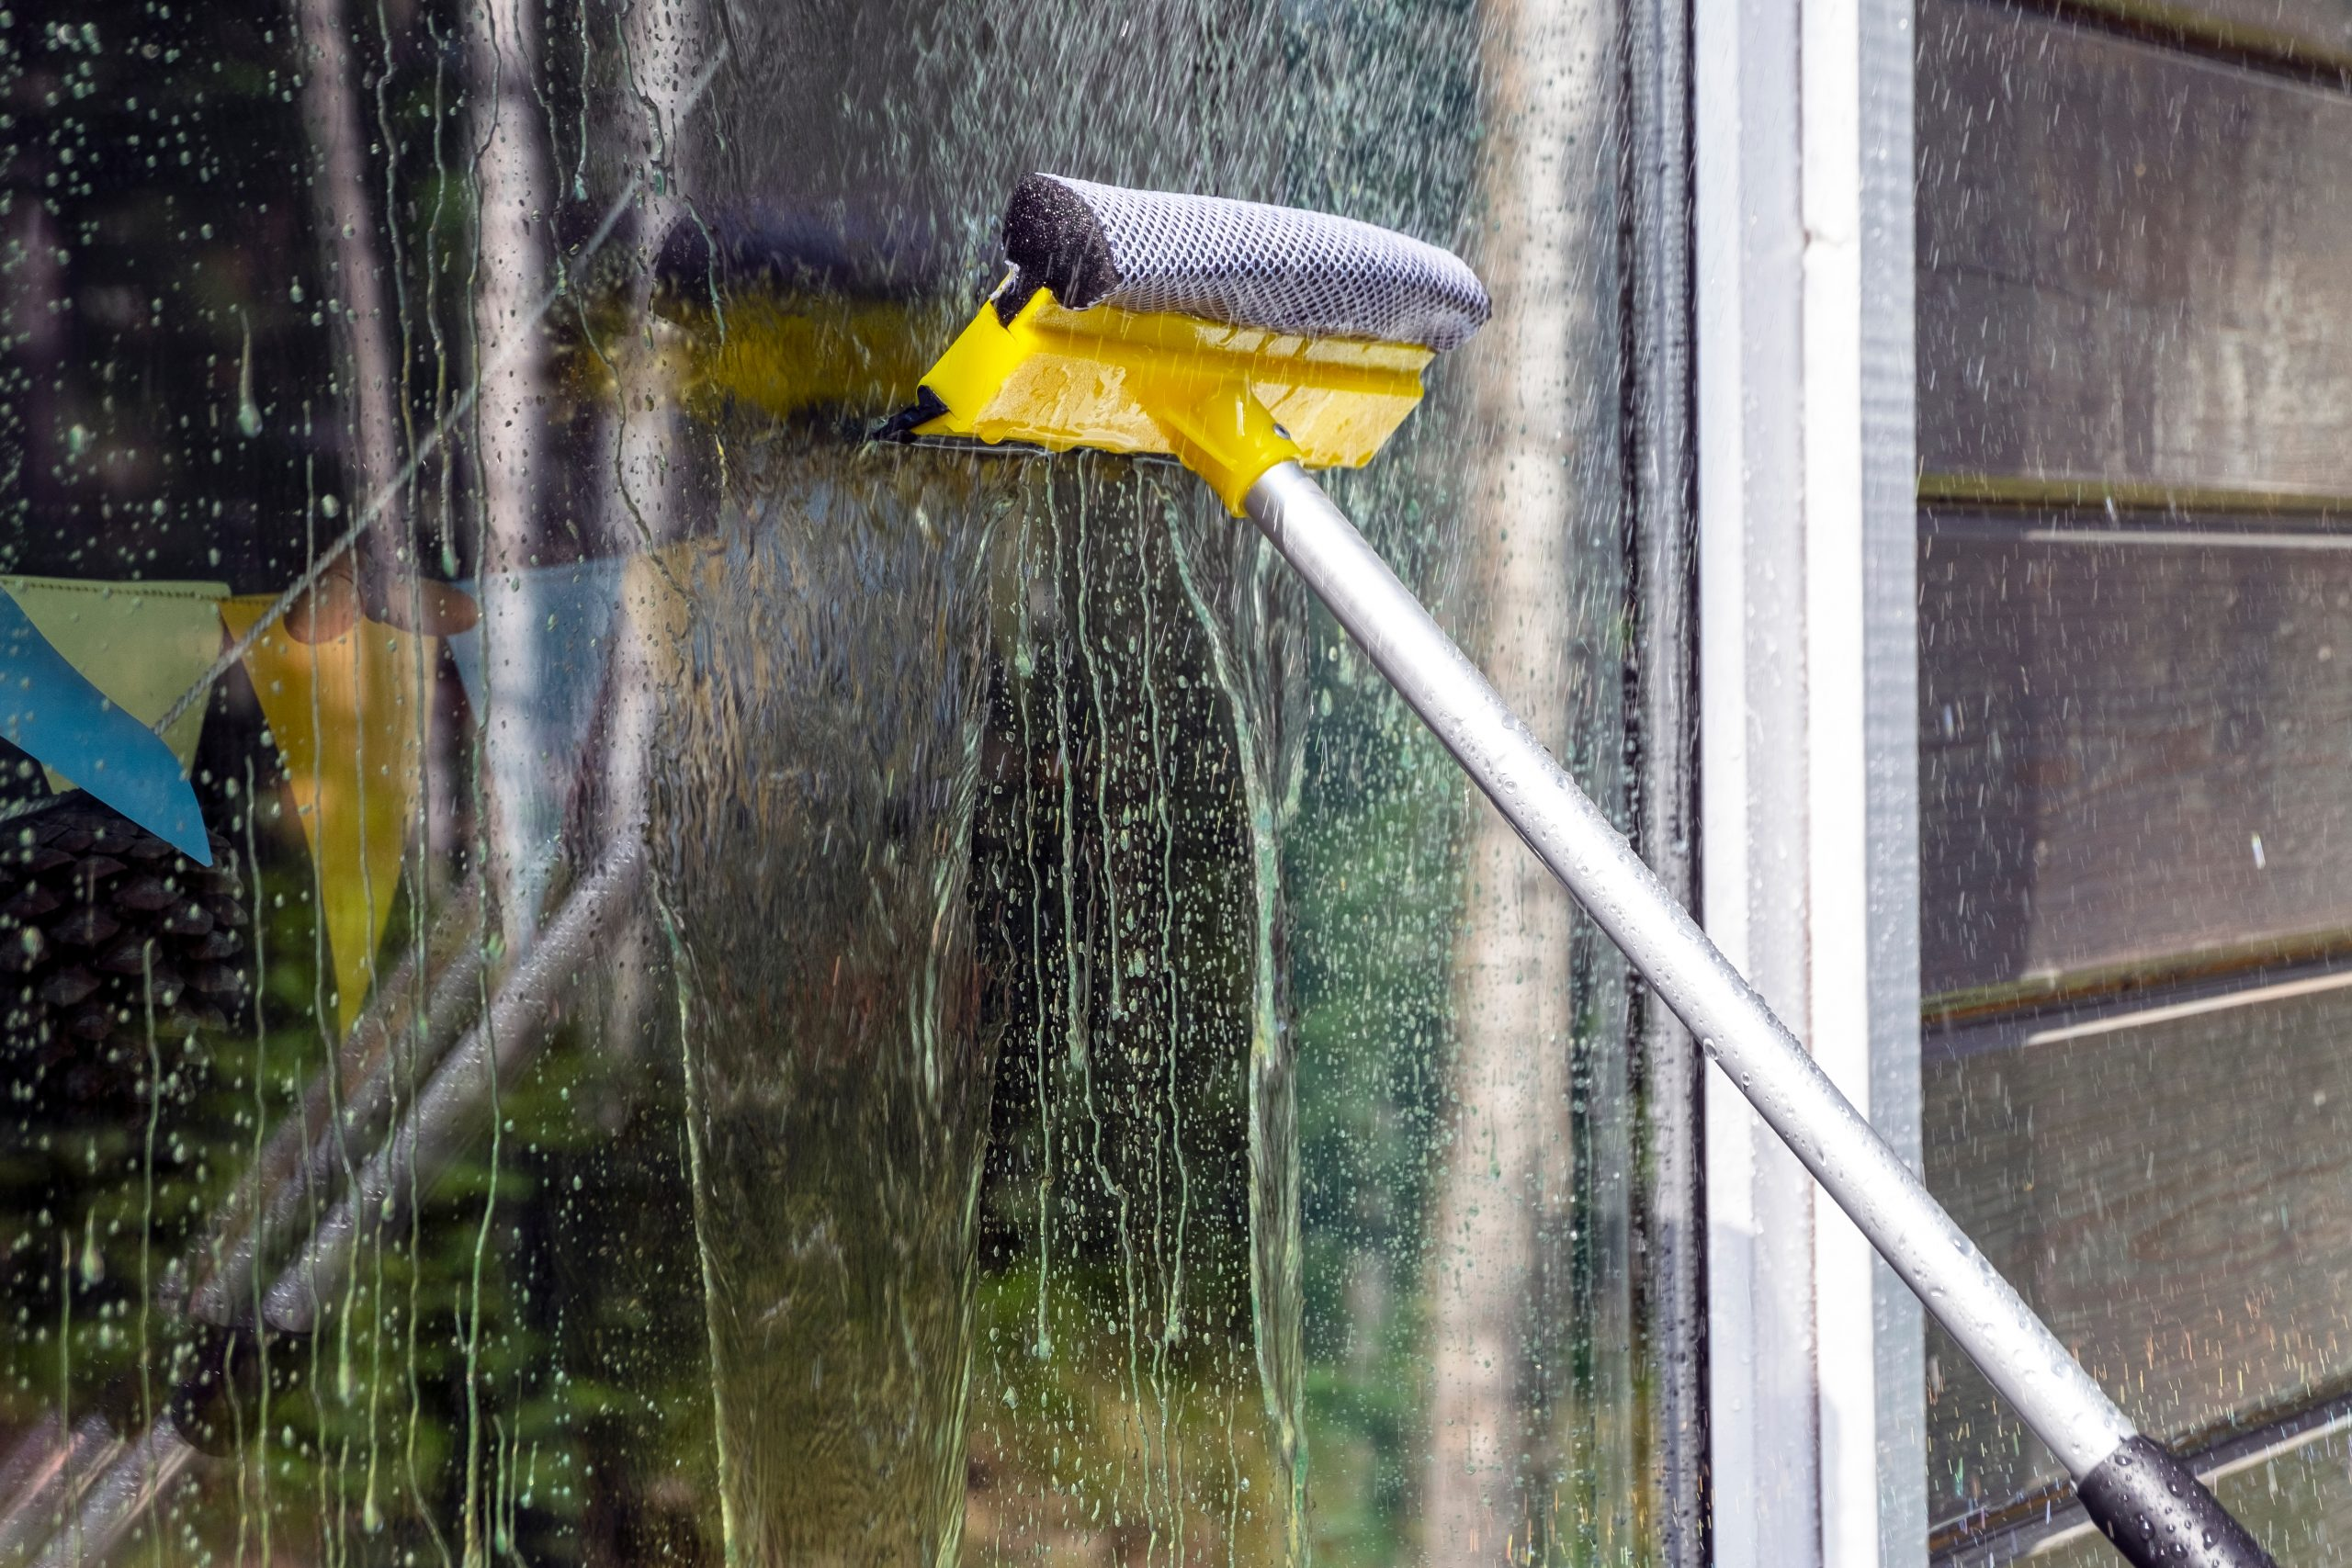 using-a-squeegee-to-wash-a-window